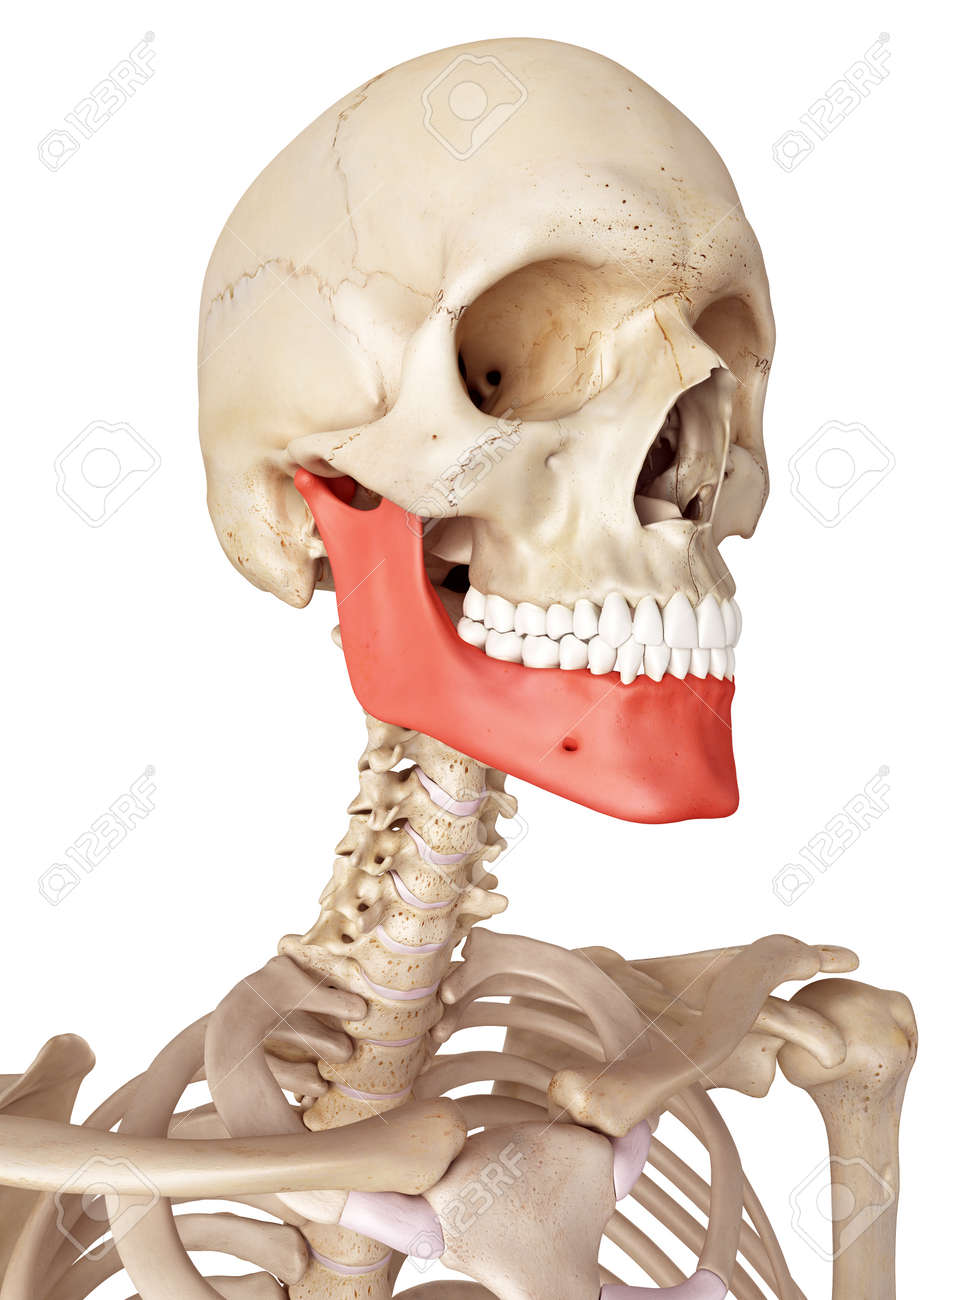 Medical Accurate Illustration Of The Jaw Bone Stock Photo Picture